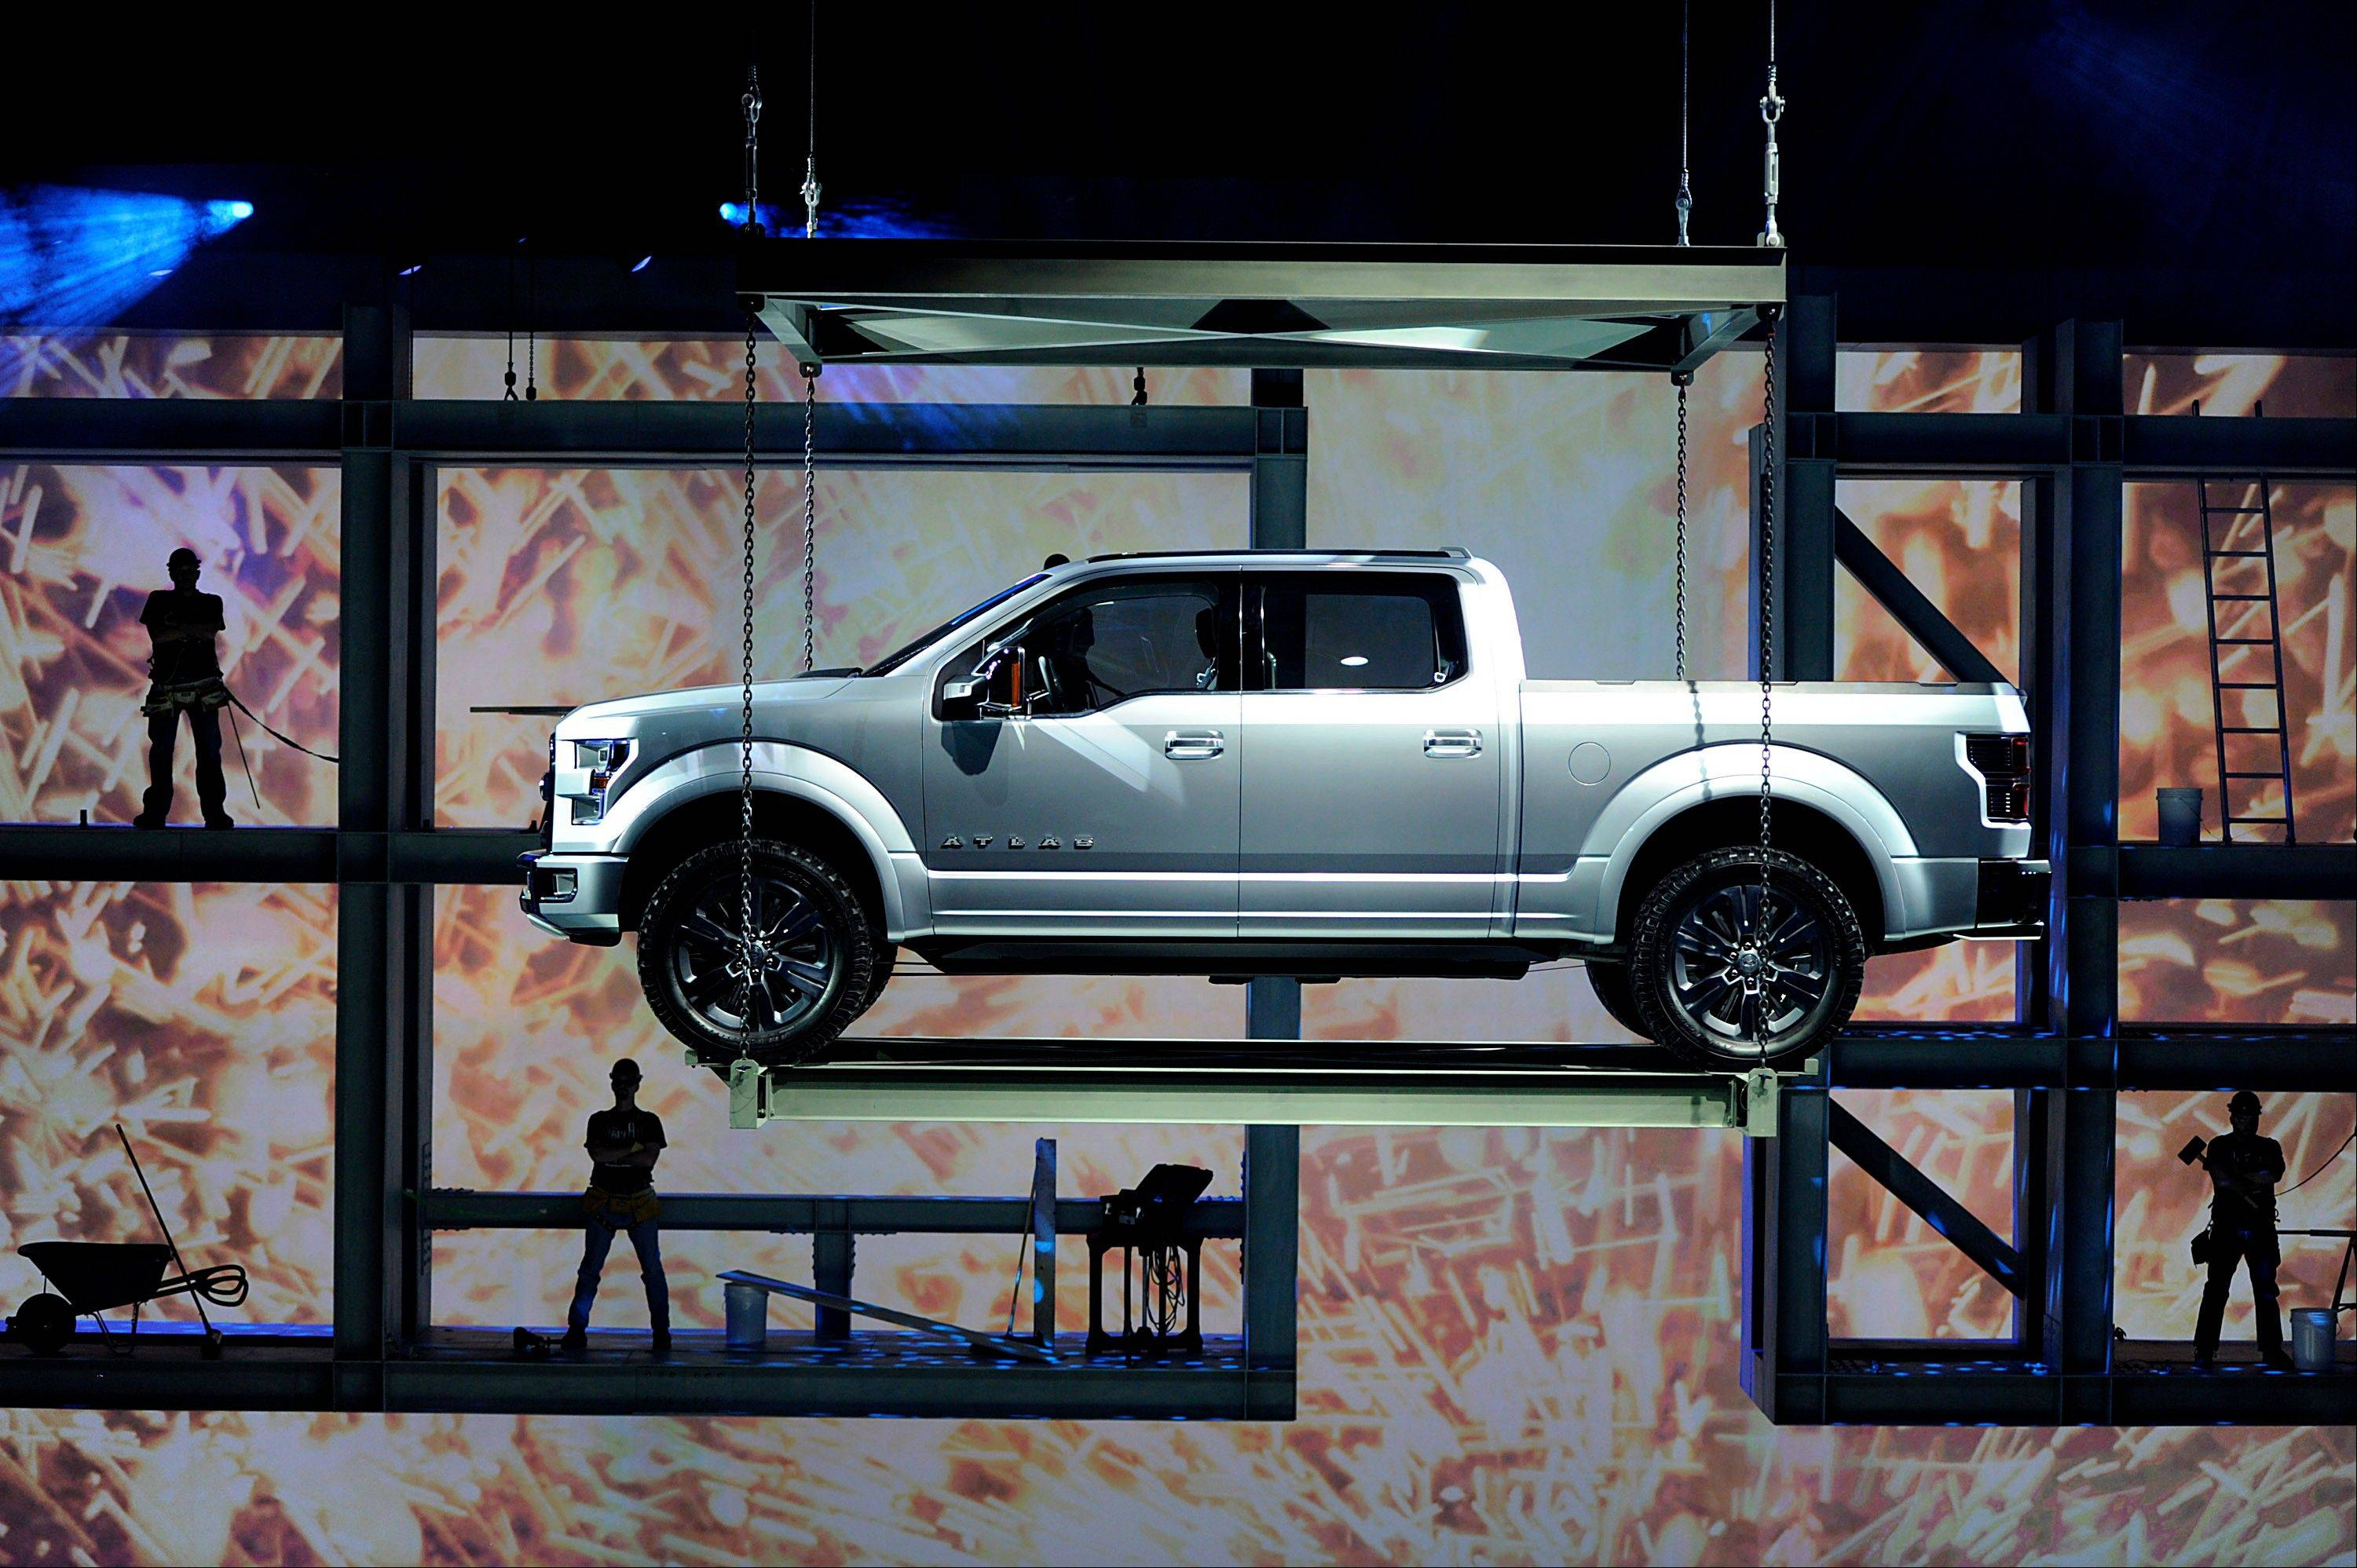 The Ford Motor Co. F-150 Atlas concept truck is lowered during it's unveiling at the 2013 North American International Auto Show (NAIAS) in Detroit, Michigan, U.S., on Tuesday, Jan. 15, 2013. The Detroit auto show runs through Jan. 27 and will display over 500 vehicles, representing the most innovative designs in the world.